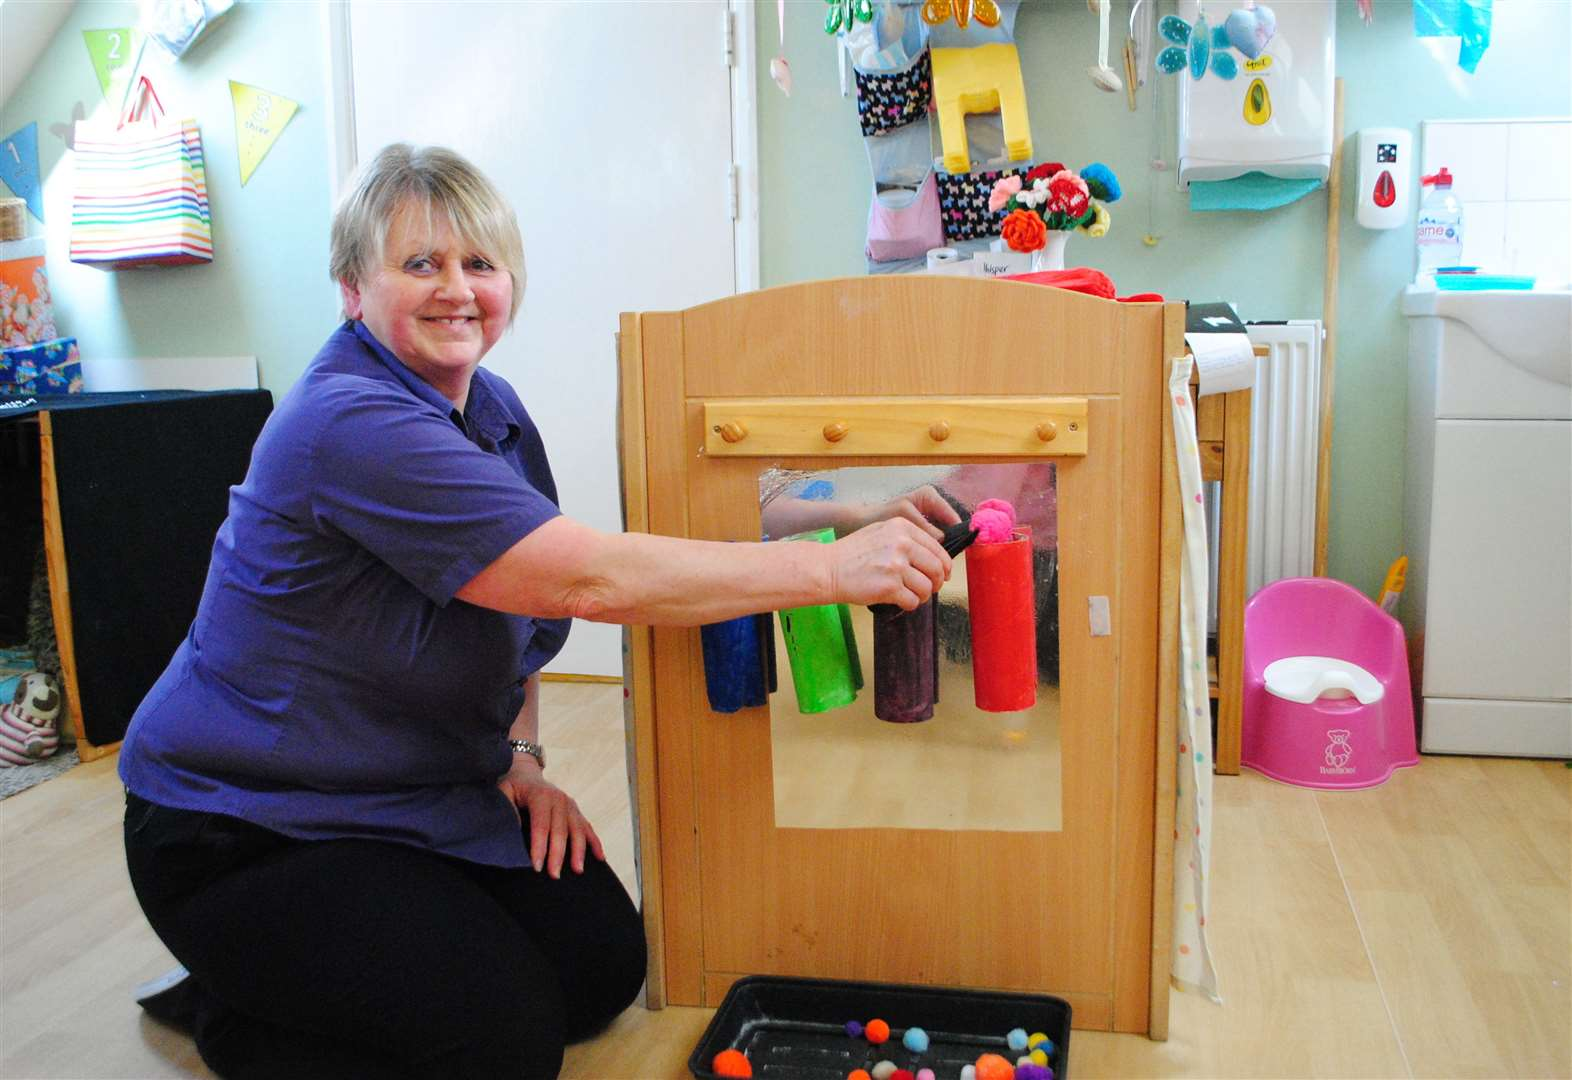 Grantham nursery leader's children's activities ideas sold in catalogue